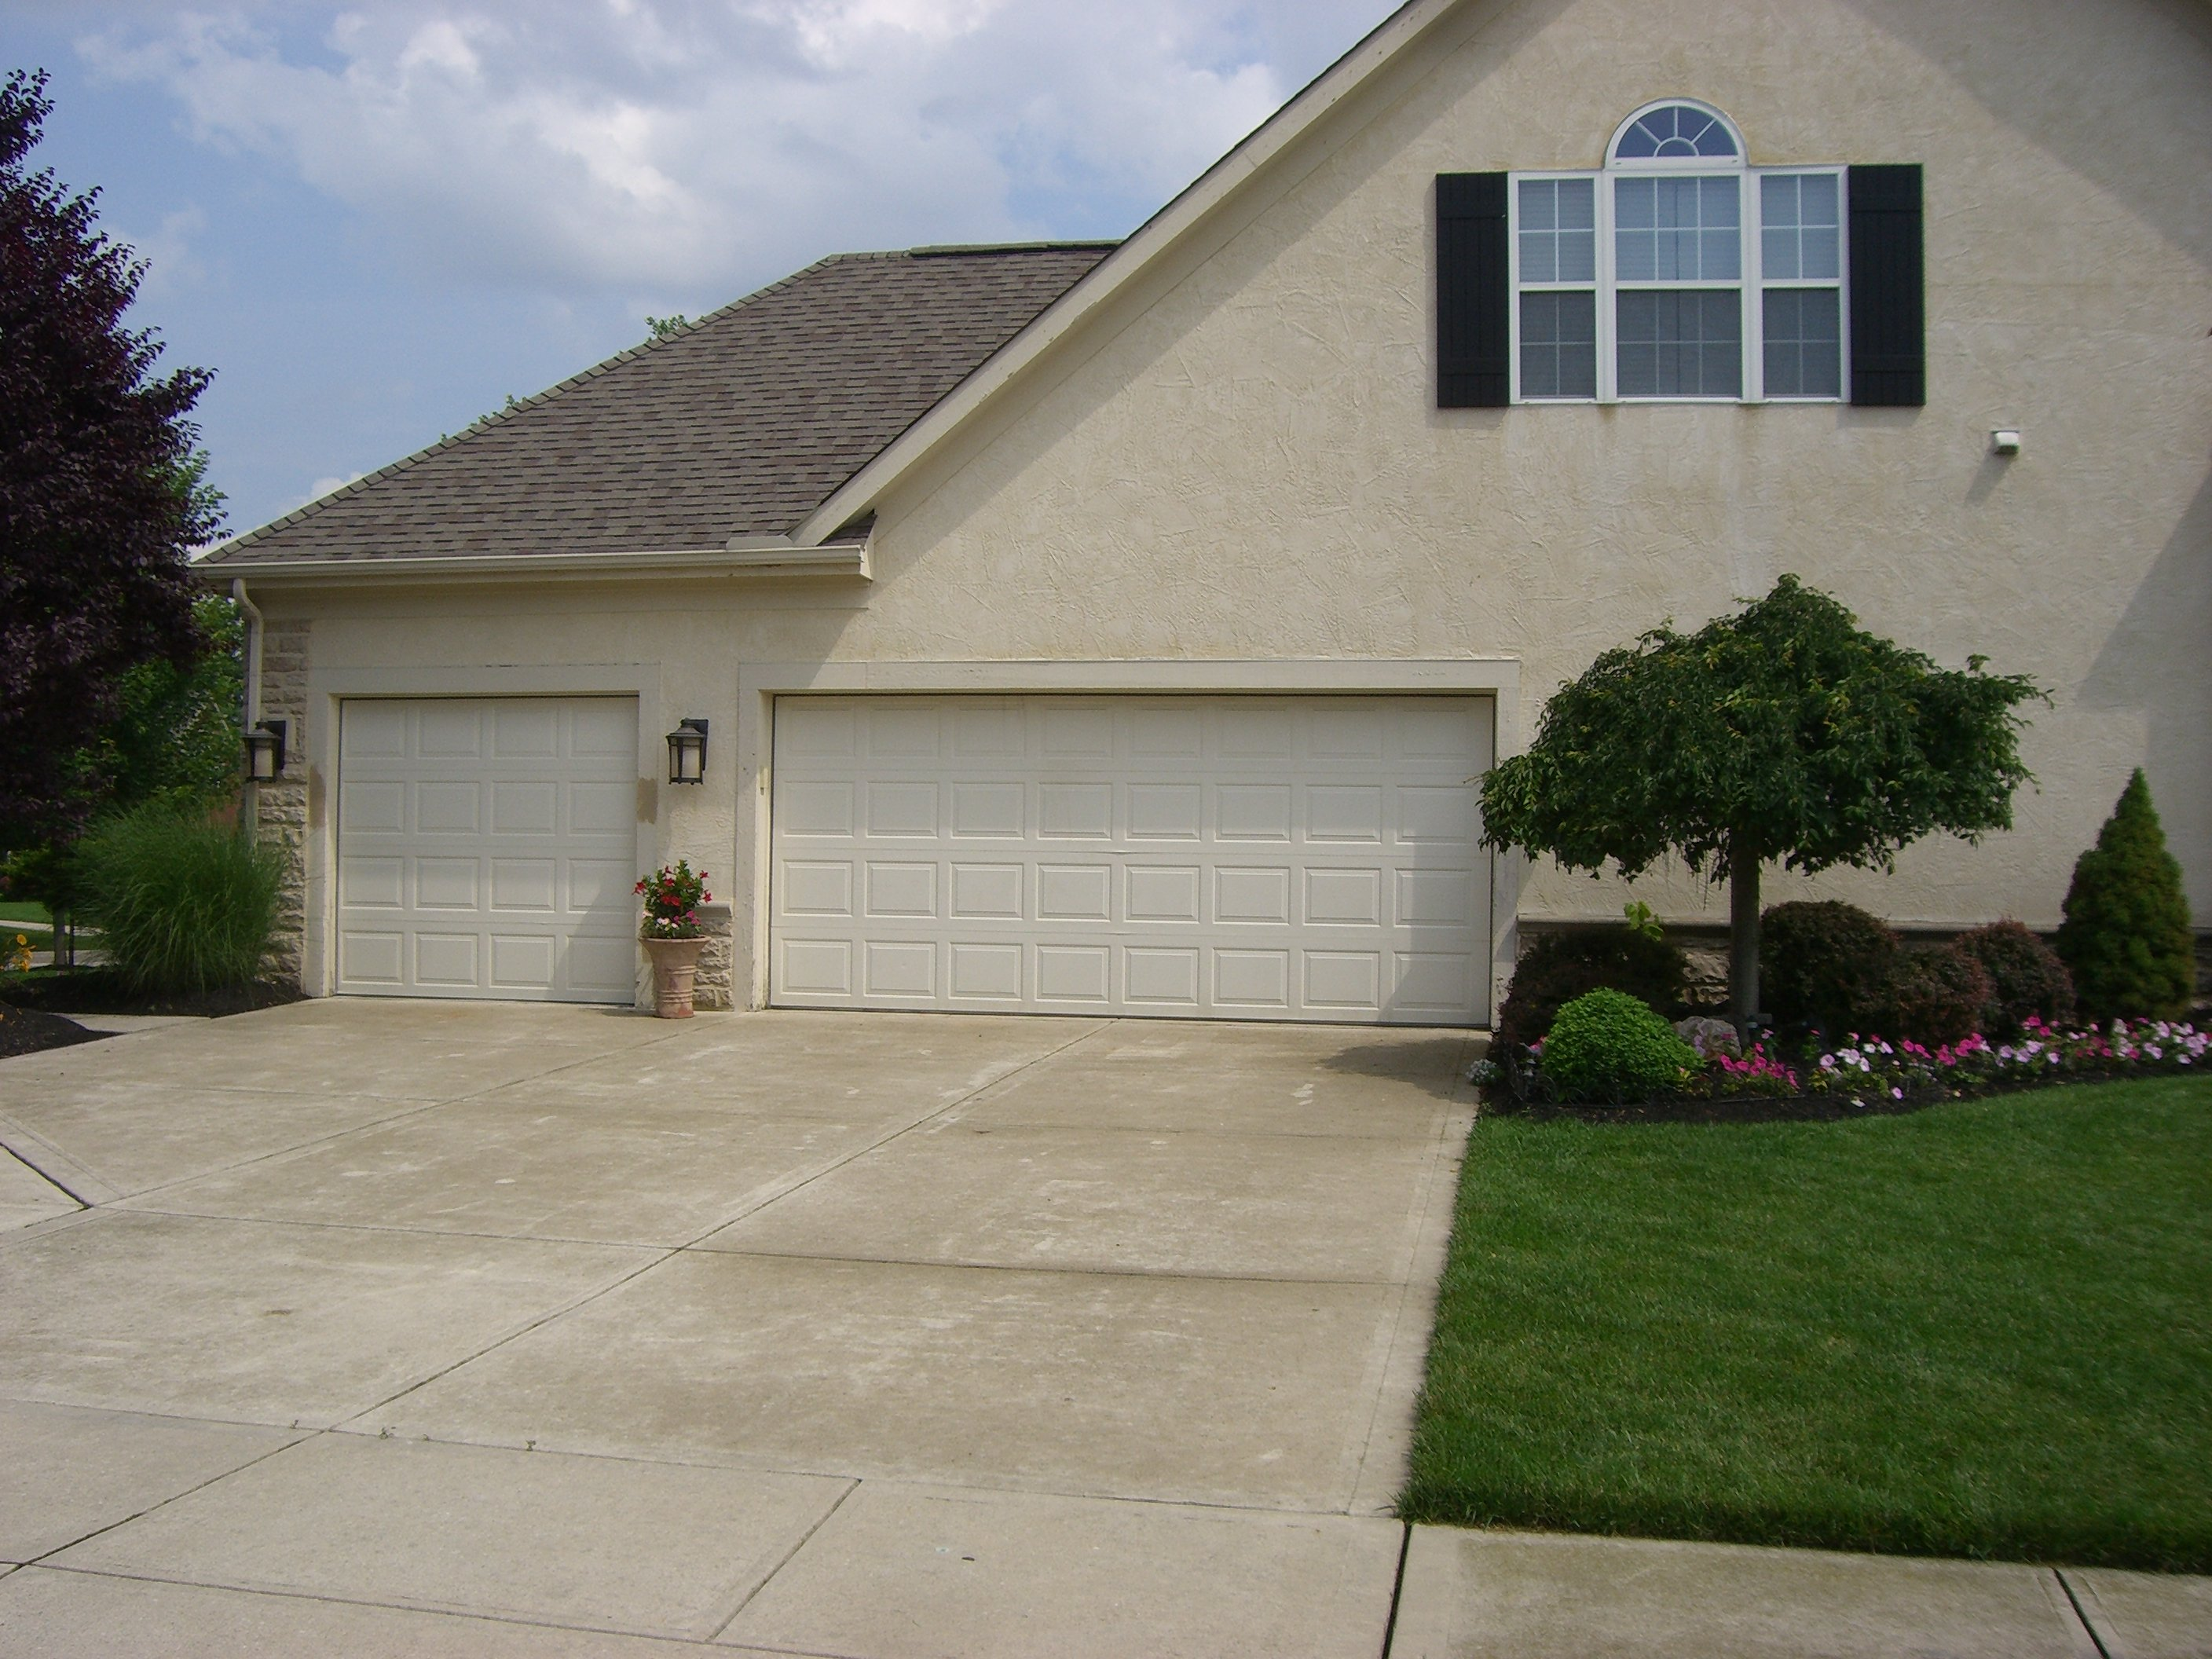 Garage Door Service in Powell Ohio & Garage Door Service Powell OH | Nofziger Doors (614) 873-3905